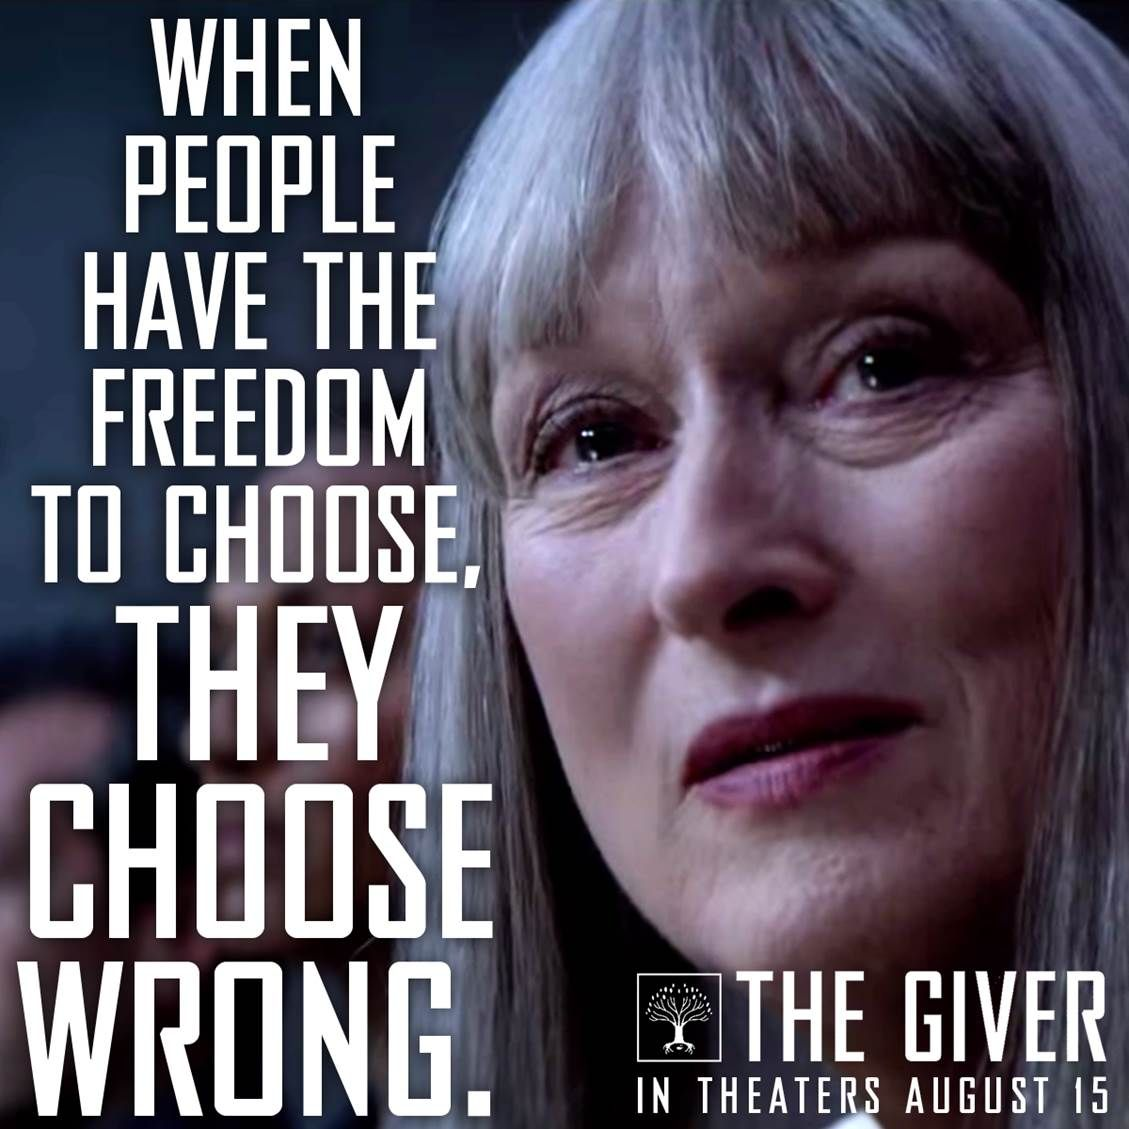 When People Have The Freedom To Choose They Choose Wrong The